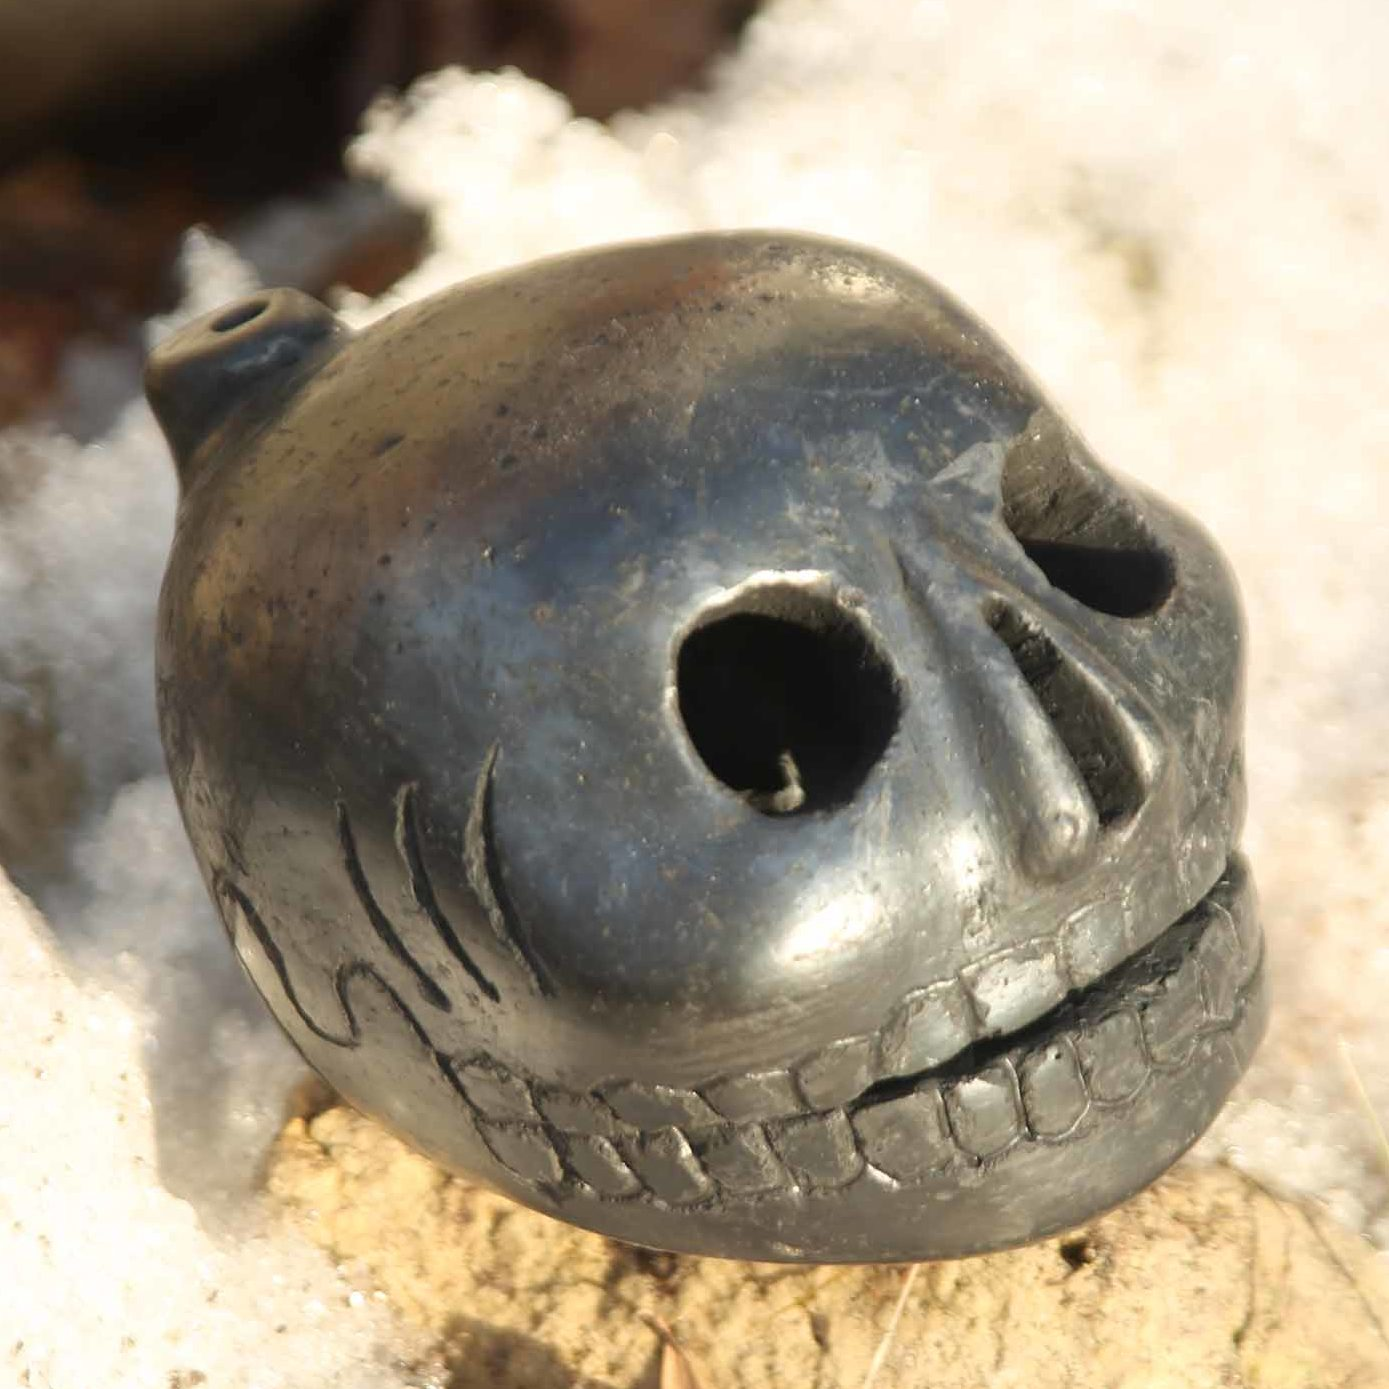 Aztec Death Whistle scary frightening sounds gut wrenching hurdeling  scream!!!